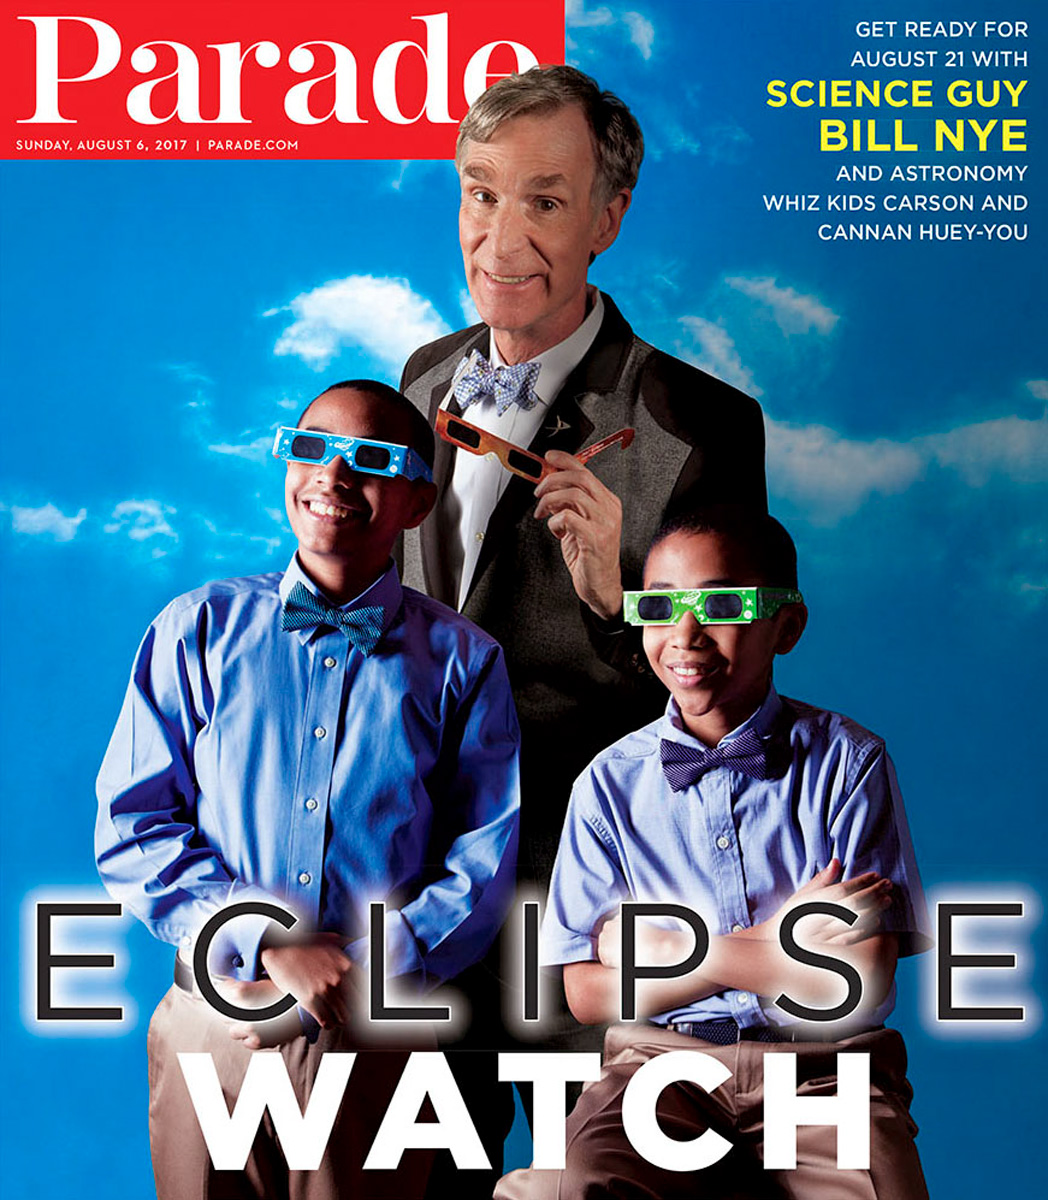 Bill Nye photographed in Pasadena, California for Parade Magazine